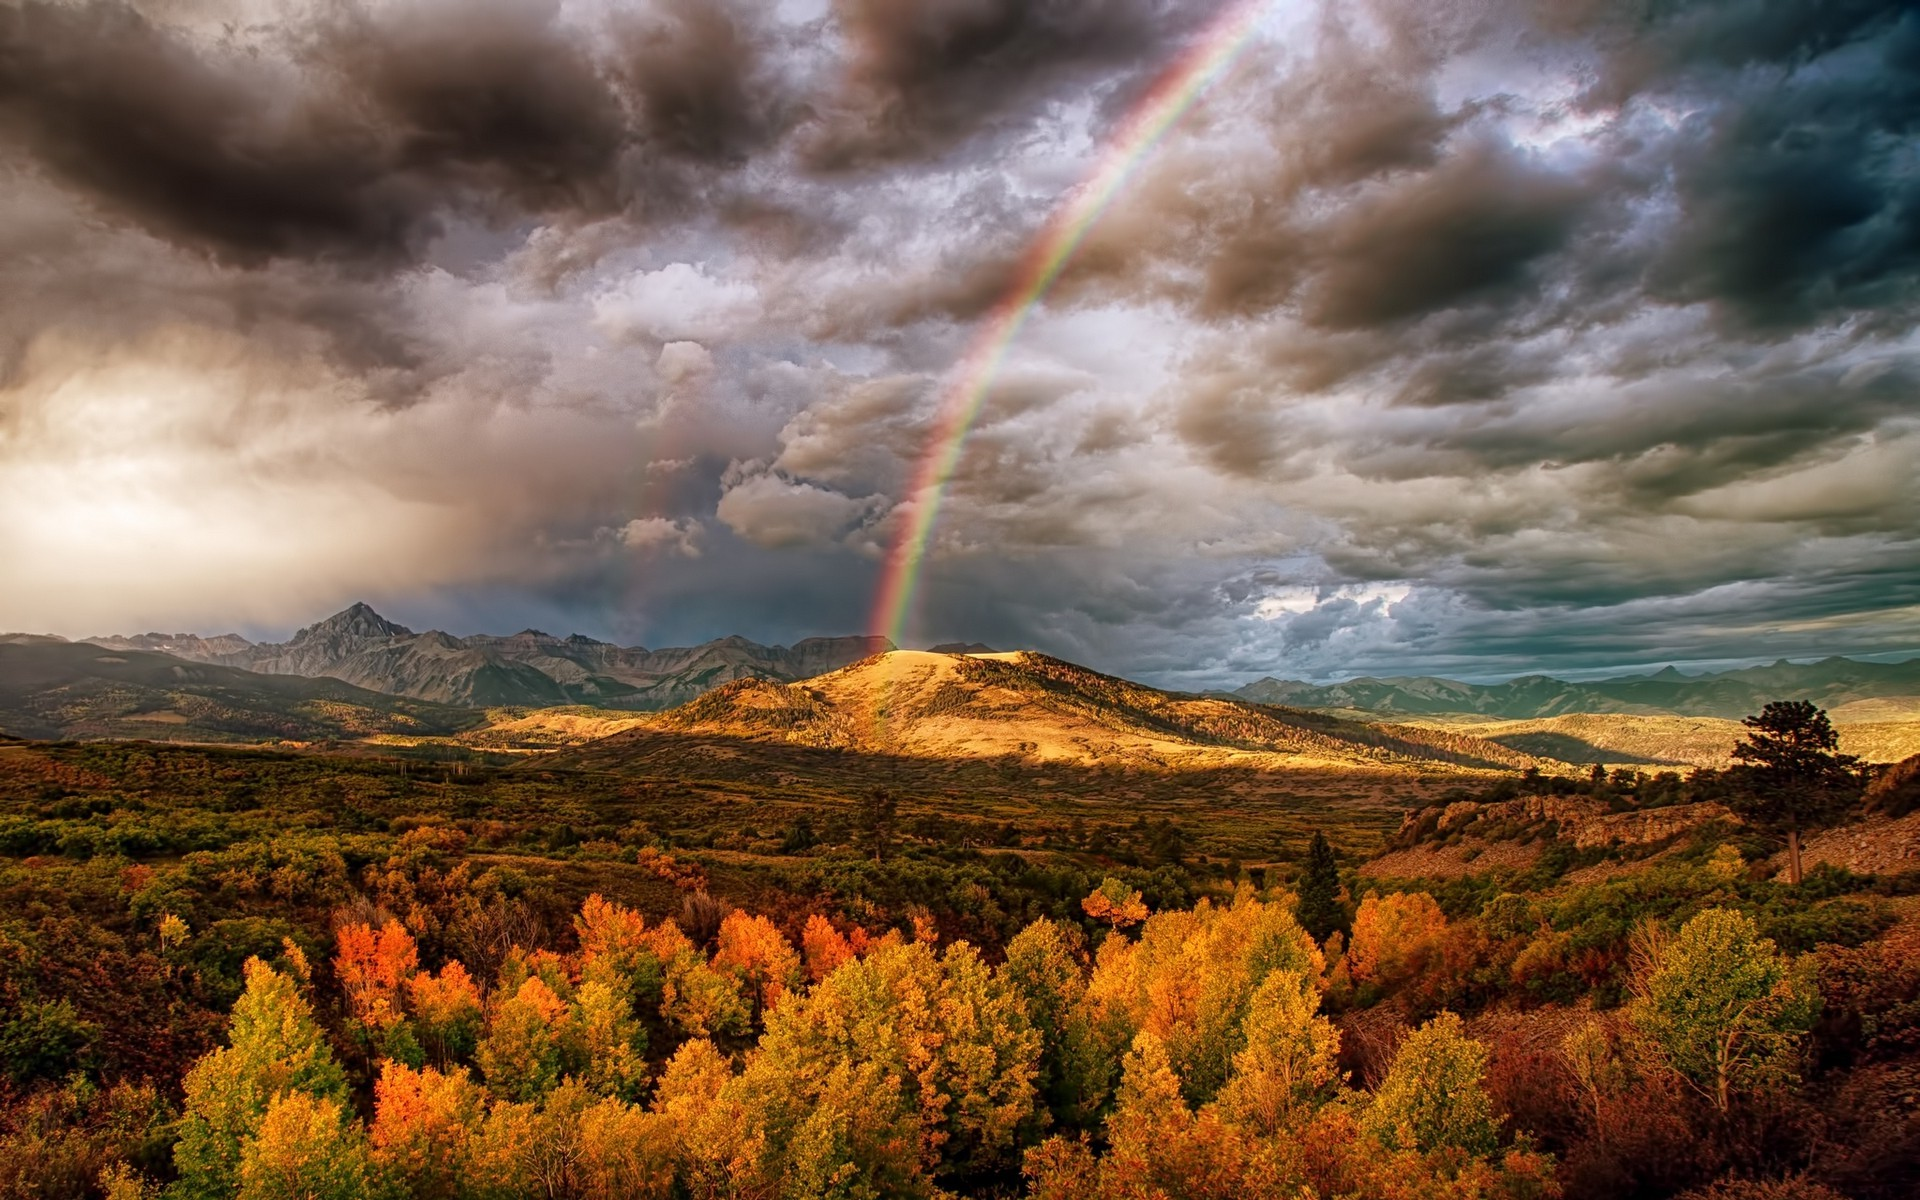 Scenic Fall Wallpaper Nature Landscape Rainbows Mountain Fall Clouds Trees